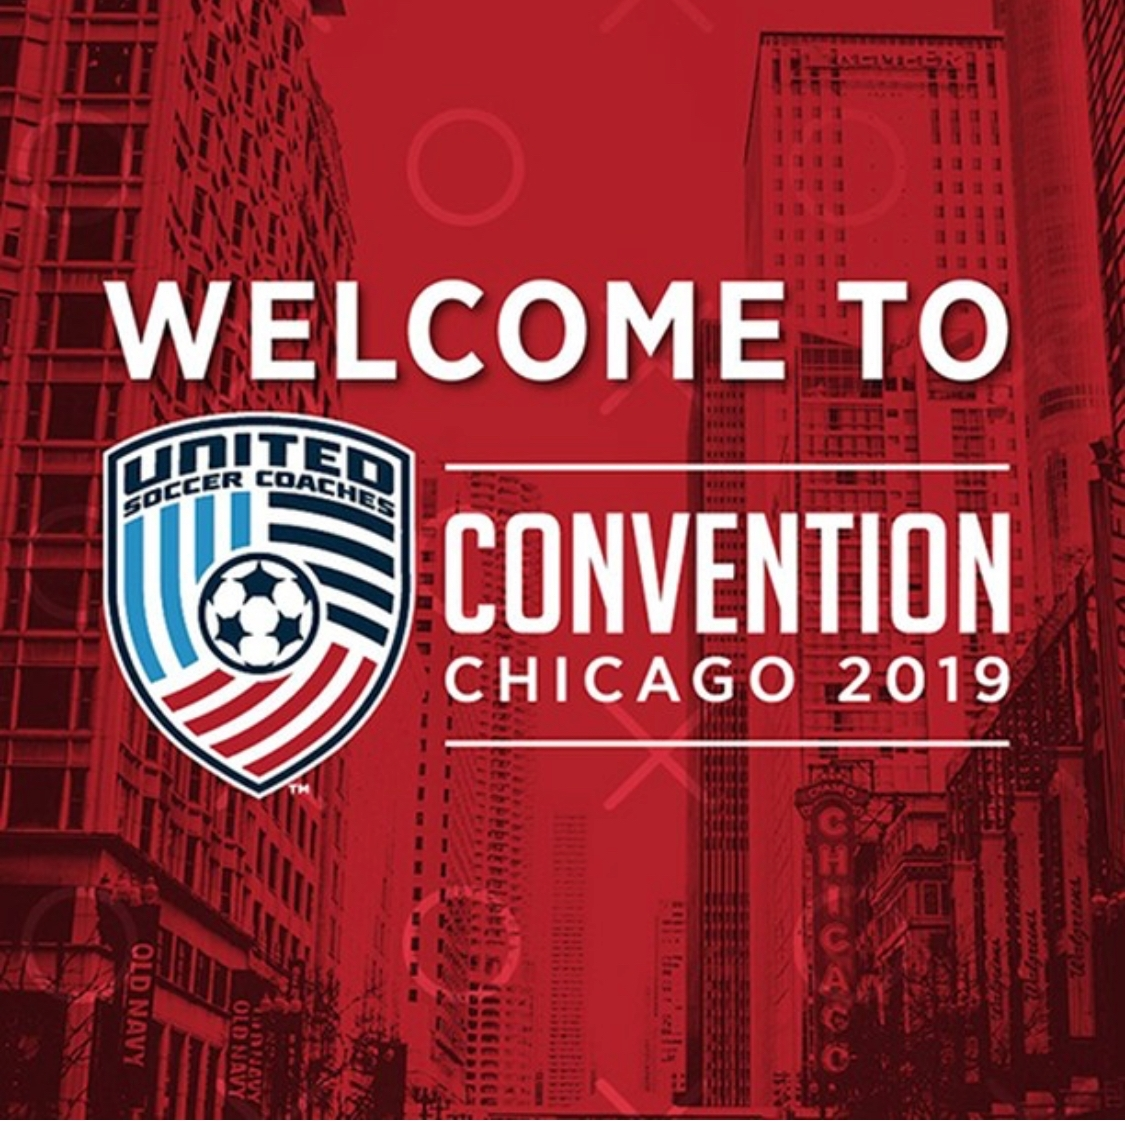 Futpost-United Soccer Coaches Convention 2019